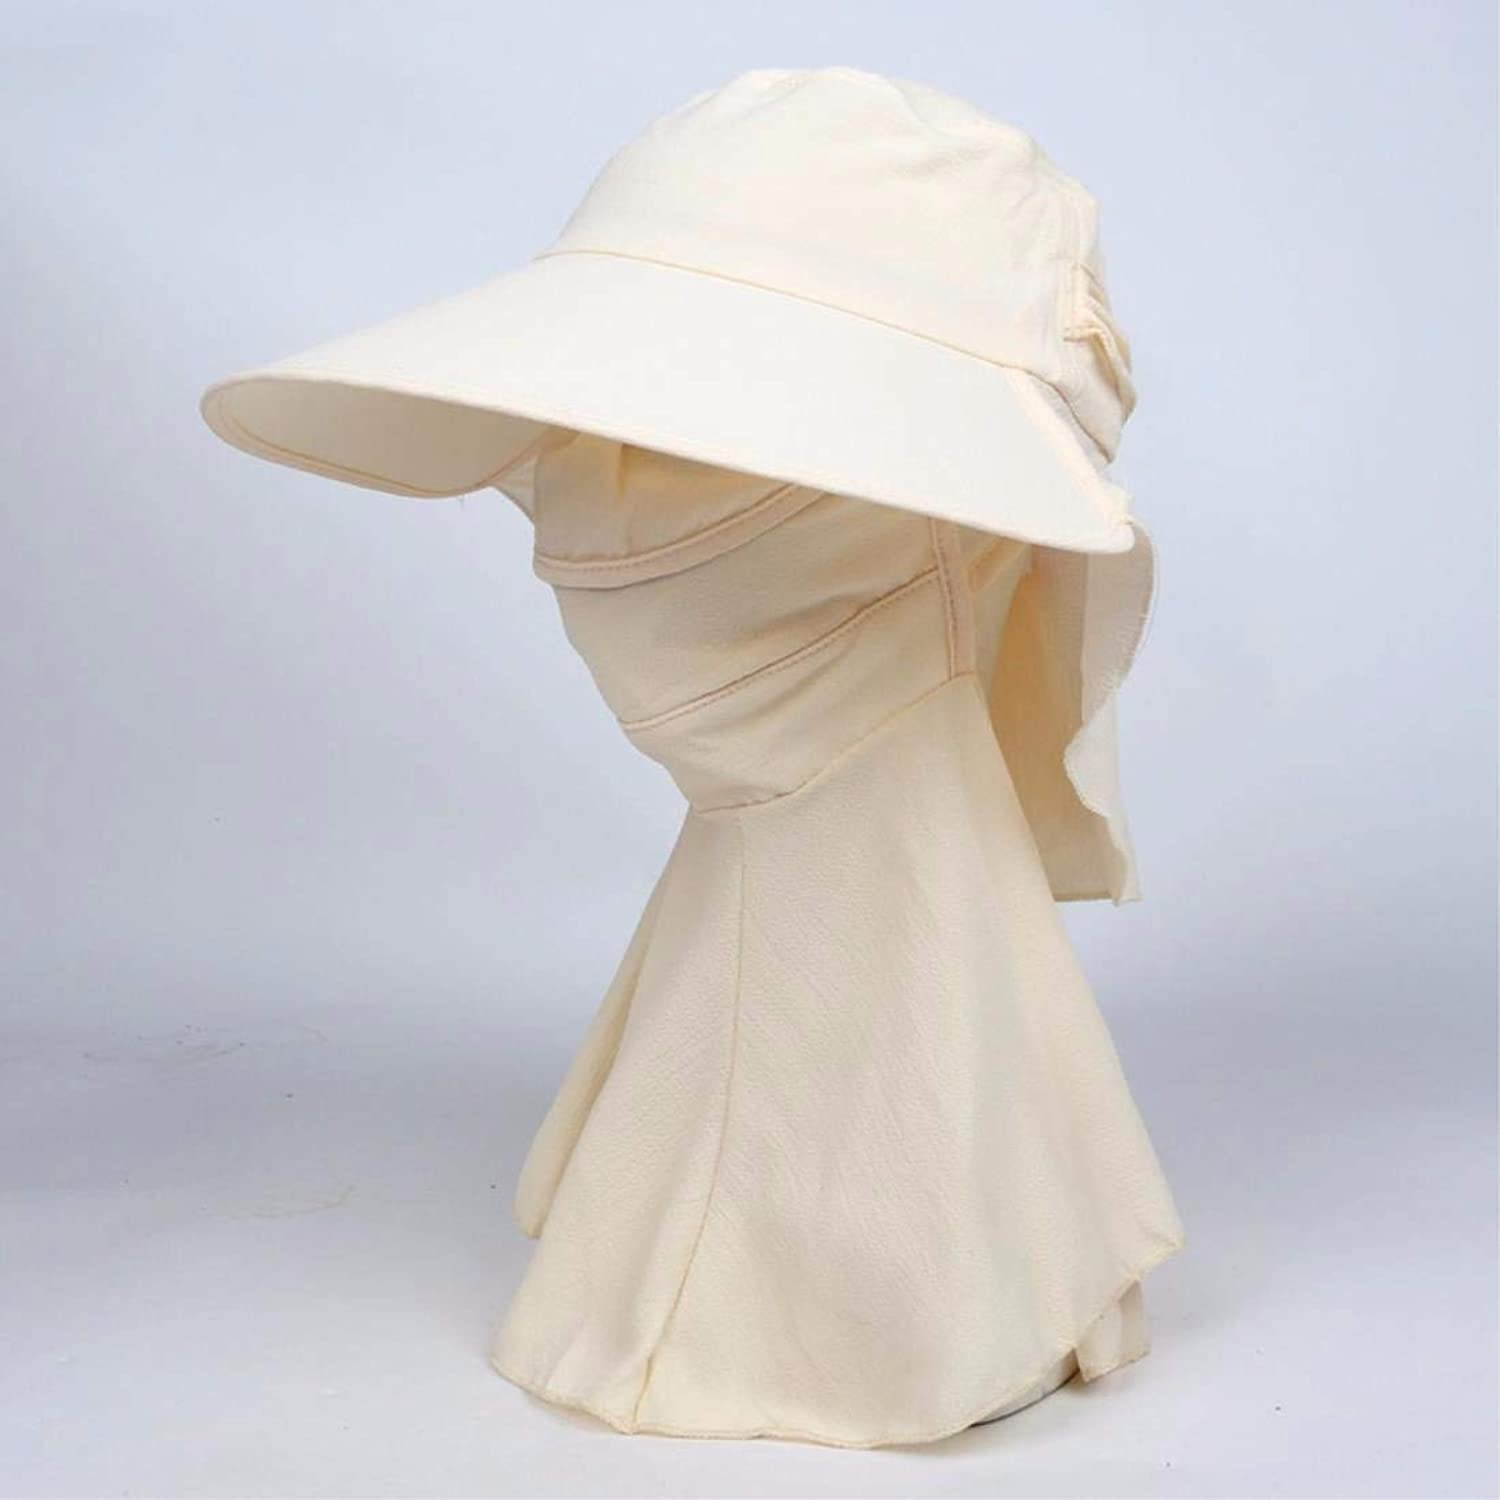 Beach Hat Women's Hats Summer Outdoors AntiUv Bike Caps Visor Caps Face Caps White Summer Sun Hat